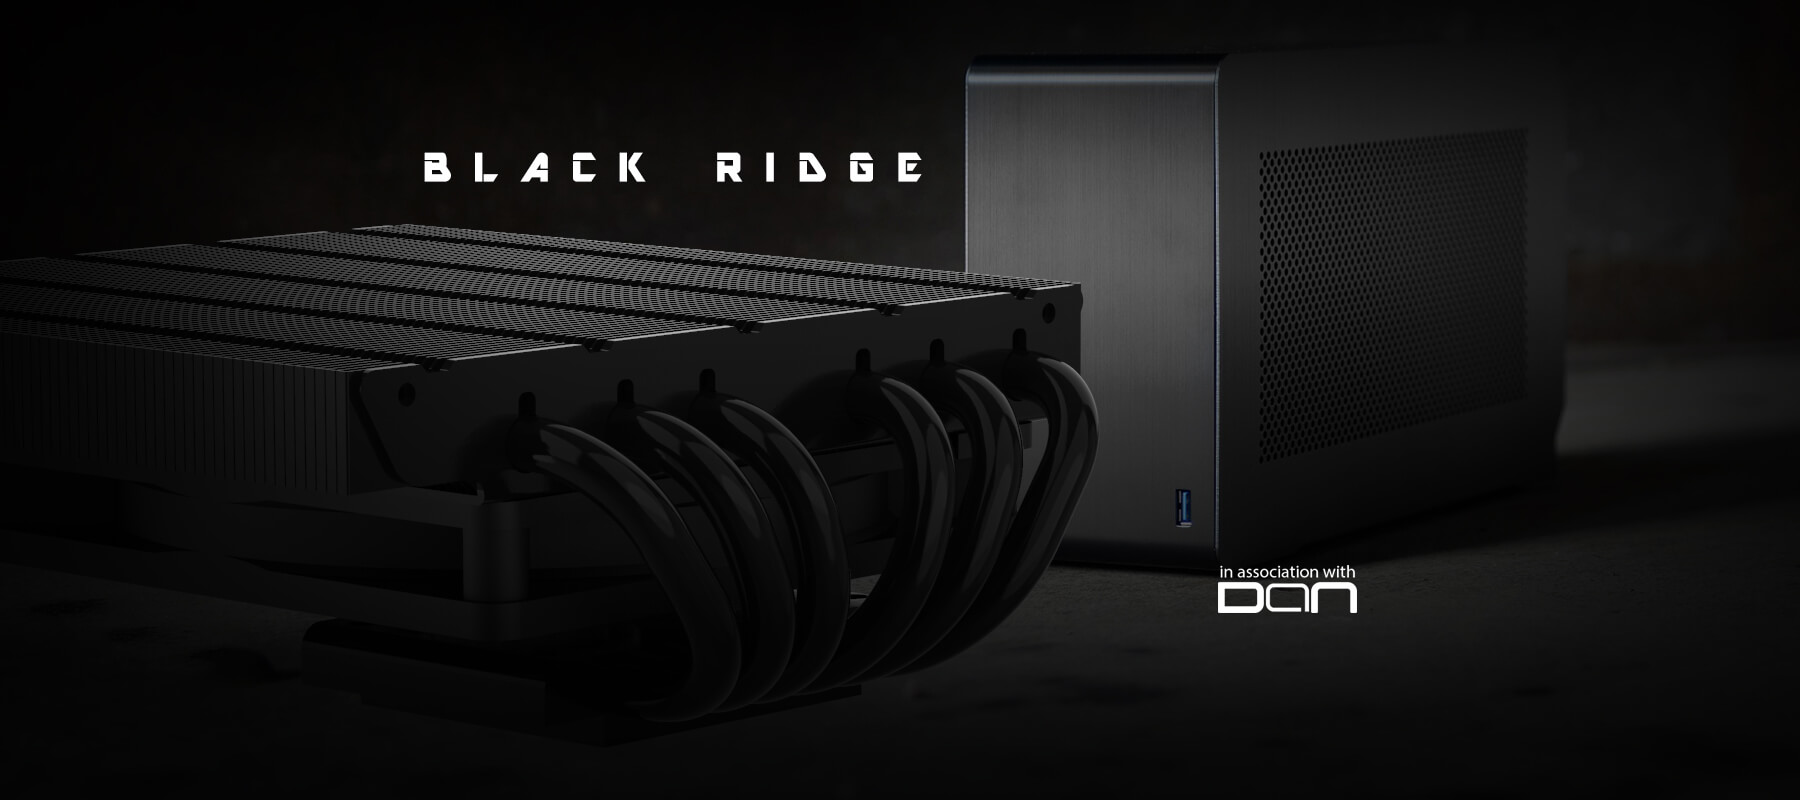 Black ridge low profile cooler in cooperation with dan cases alpenföhn